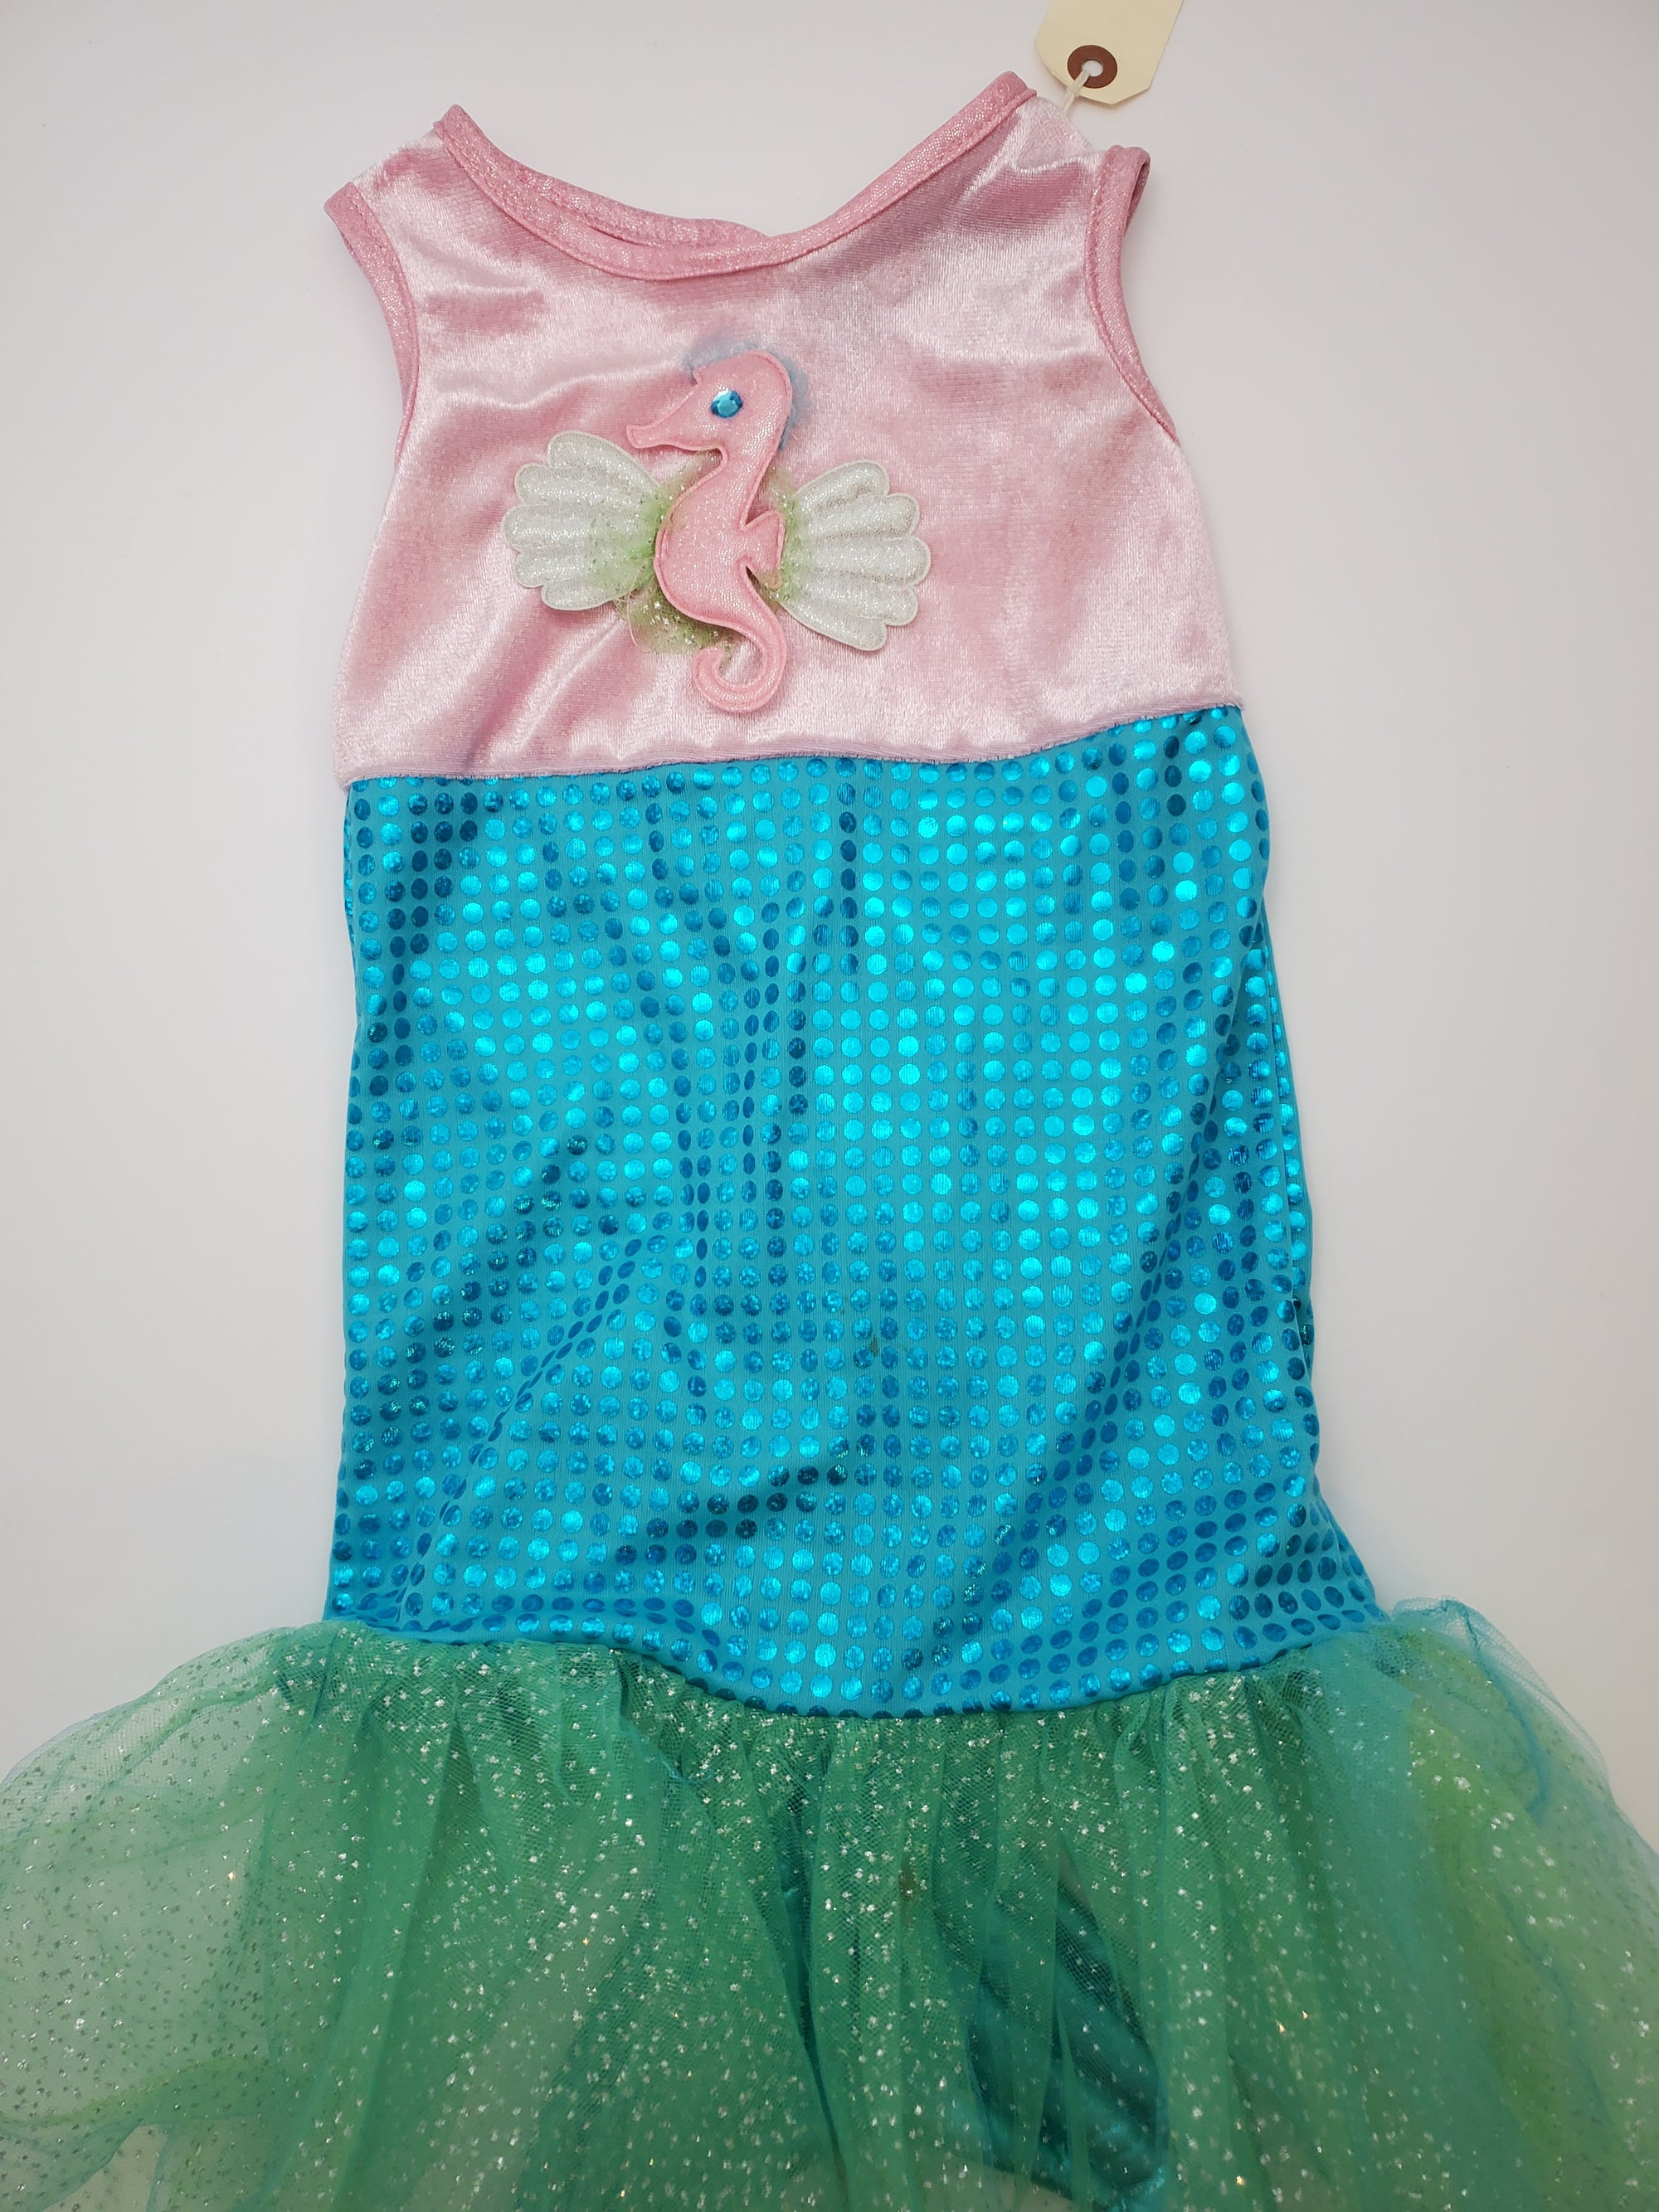 Resale 24 month Dream Play Imagine Costume / Dress Up - Mermaid